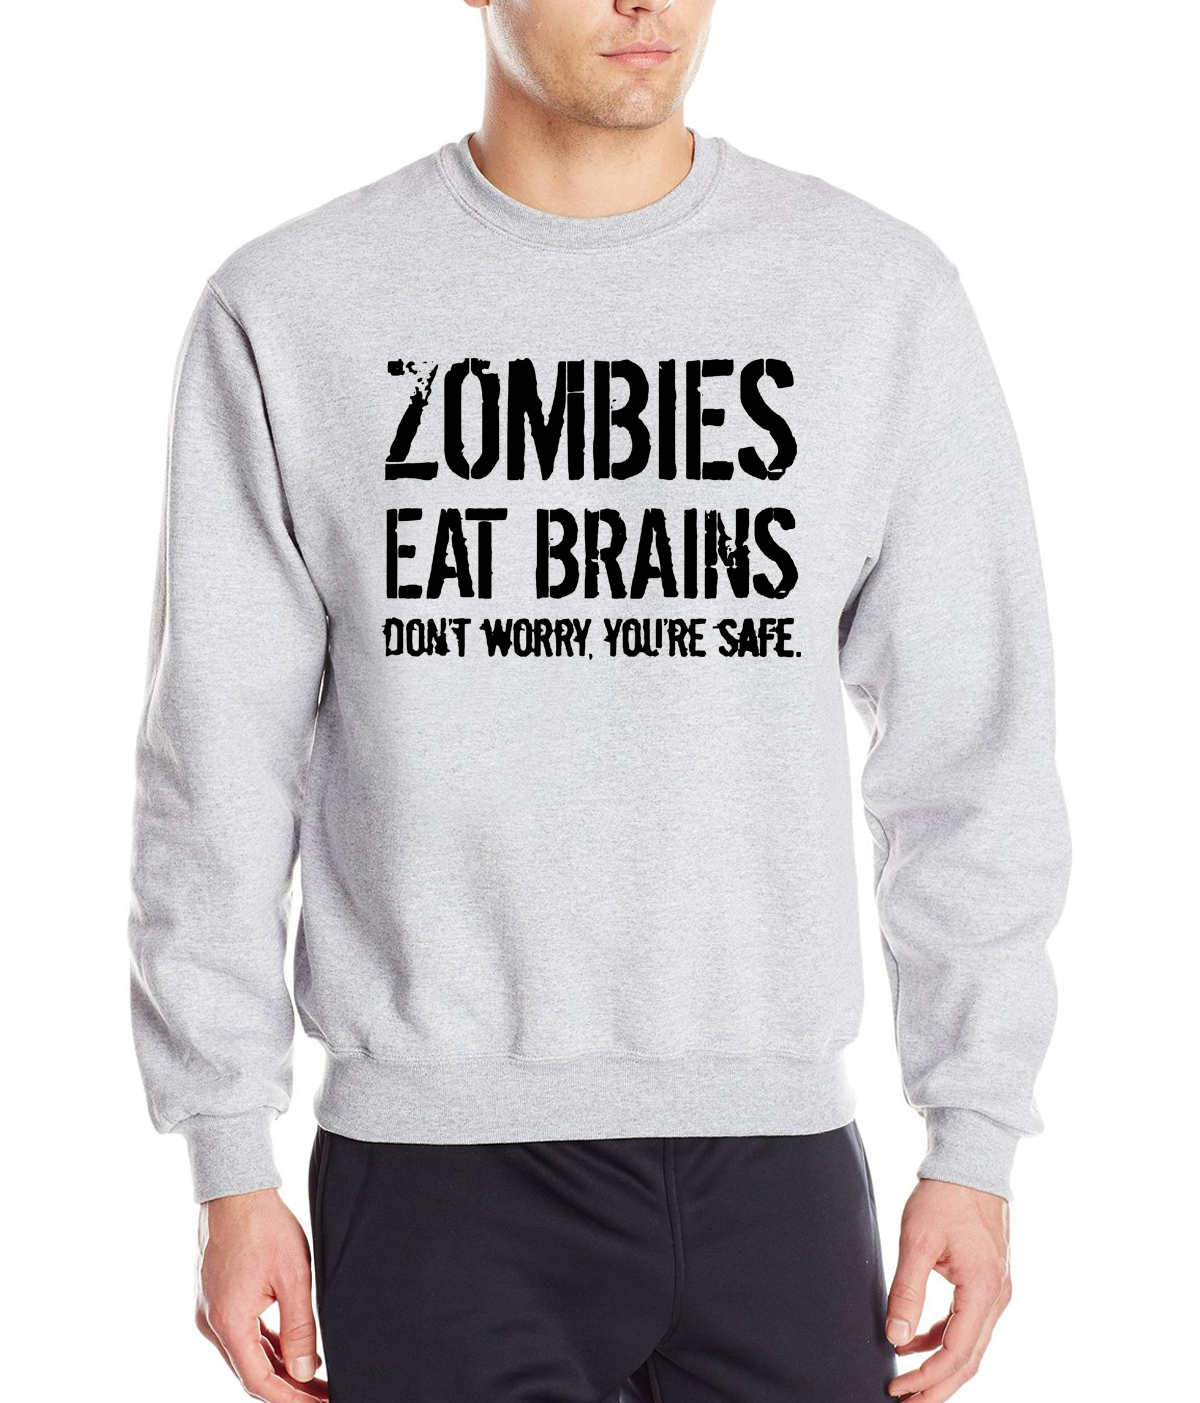 Zombies Eat Brains , You Are Safe 2019 spring winter hip hop sweatshirt men fleece high quality  hoodies loose fit tracksuit